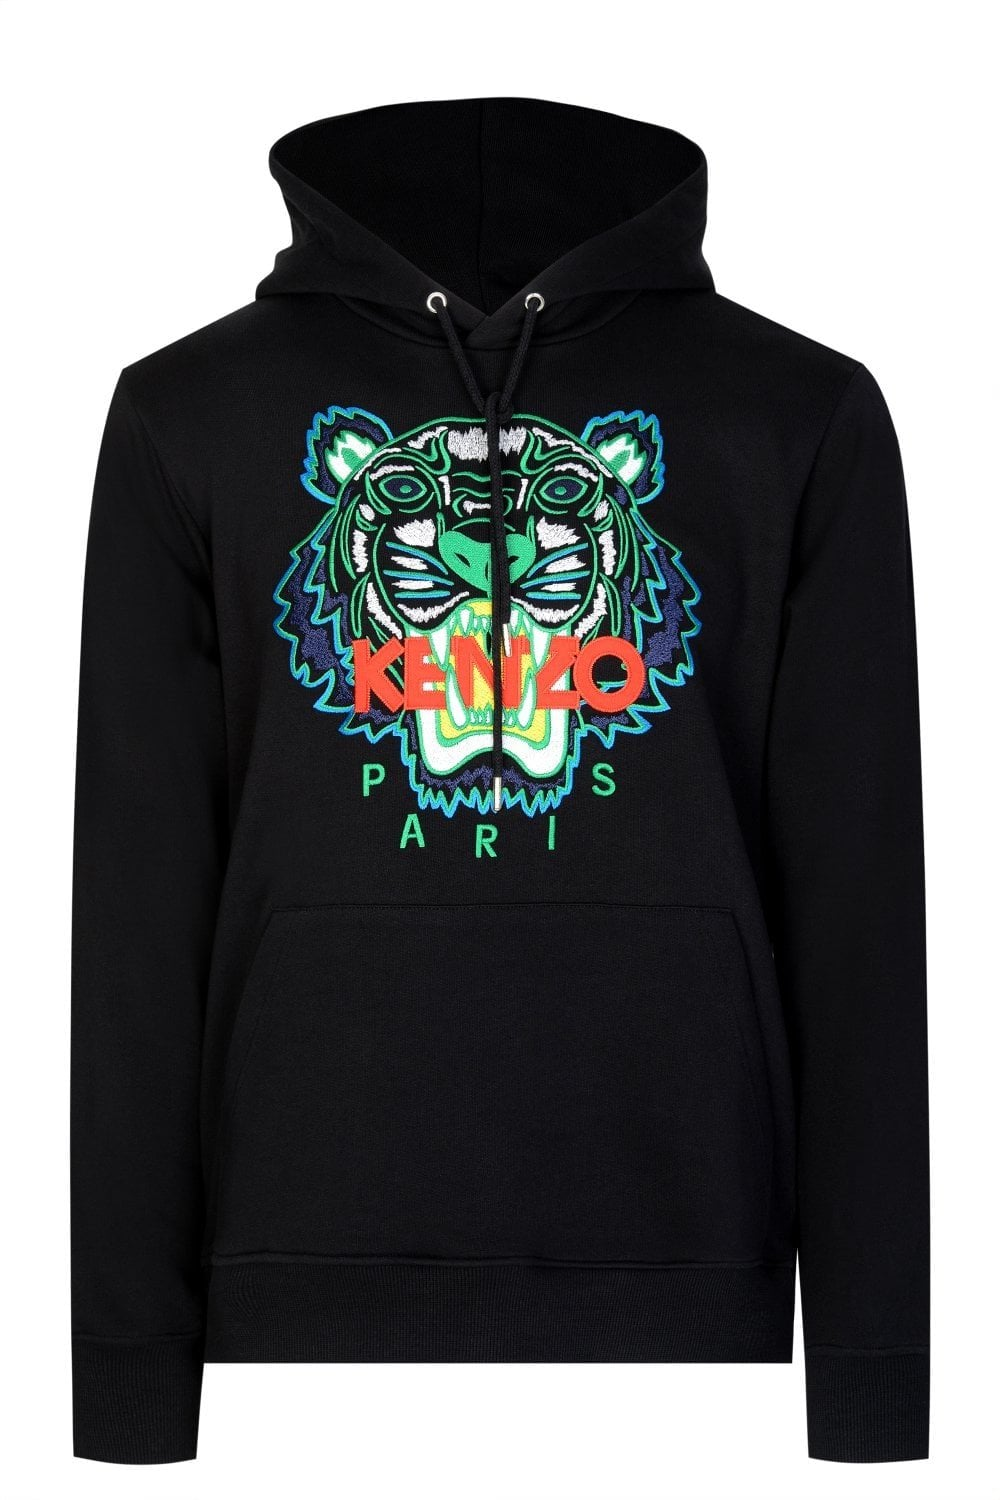 87cbeed4b KENZO Kenzo Paris Classic Tiger Hooded Sweatshirt - Sweats & Hoodies ...